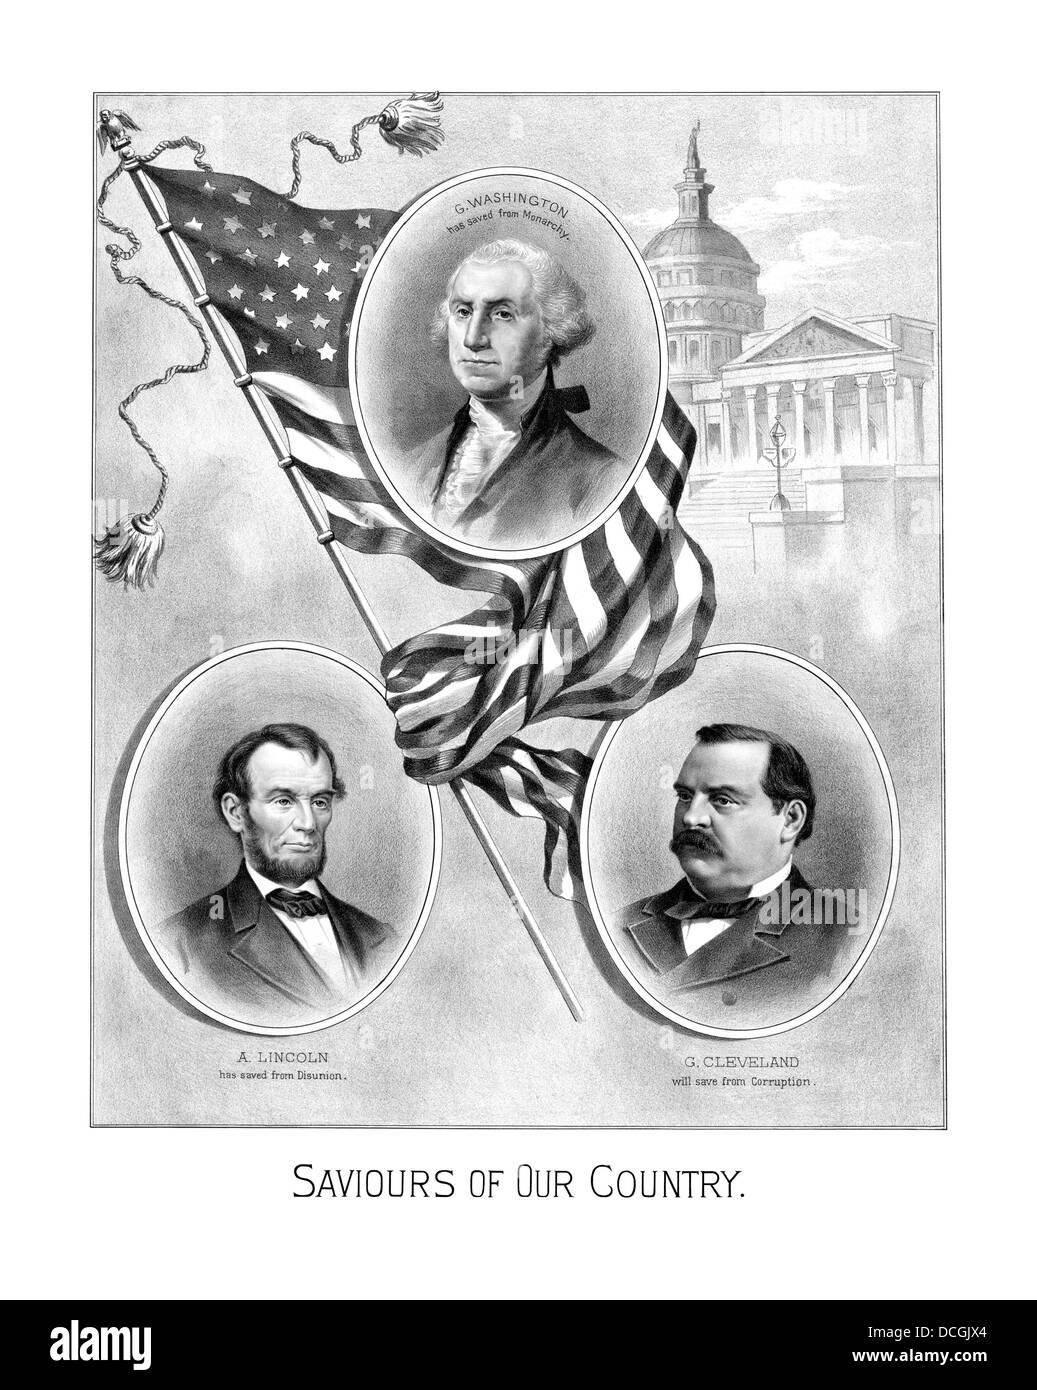 Digitally restored vintage American history print. - Stock Image